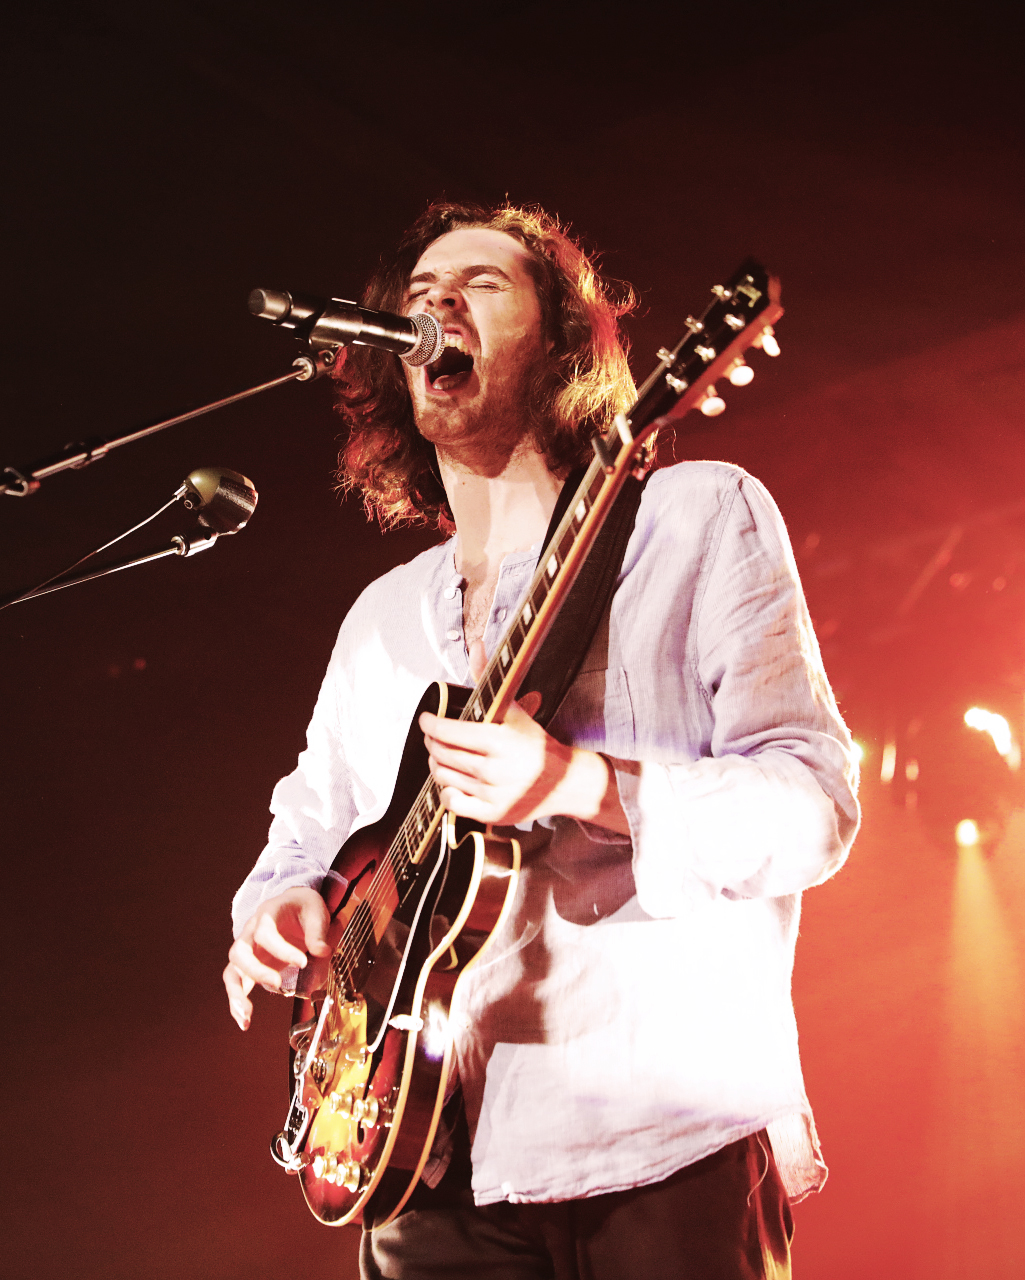 Hozier has such an overwhelming presence on stage. Photo: @Lmsorenson